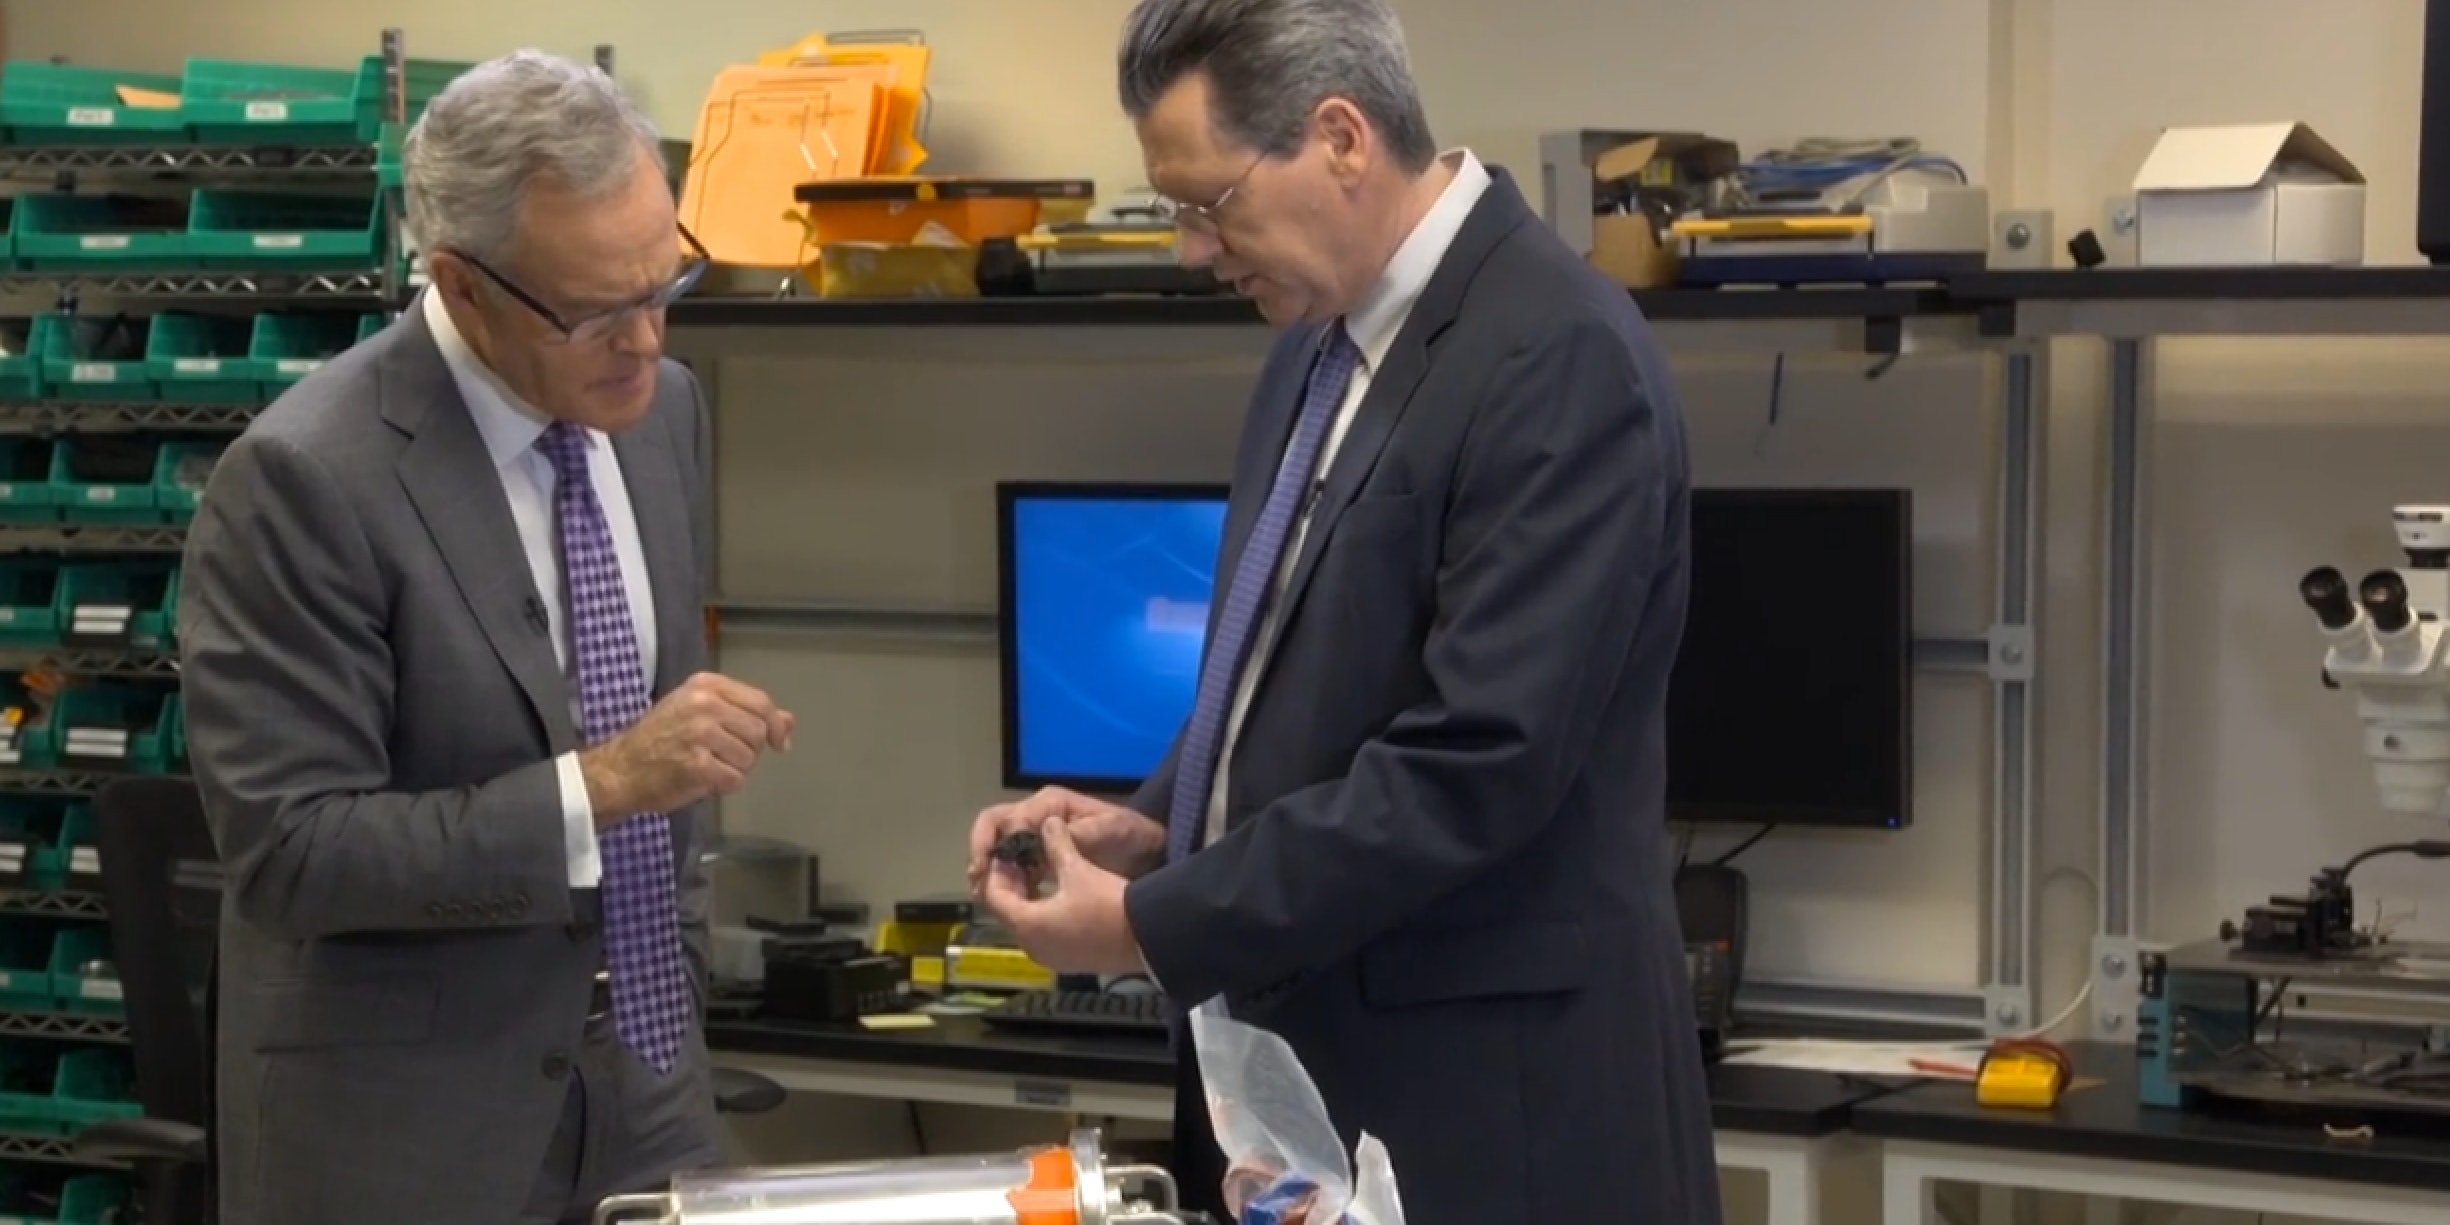 Jim Ritter, deputy director of the National Transportation Safety Board, shows '60 Minutes' correspondent Scott Pelley the voyage data recorder (VDR) recovered from El Faro.